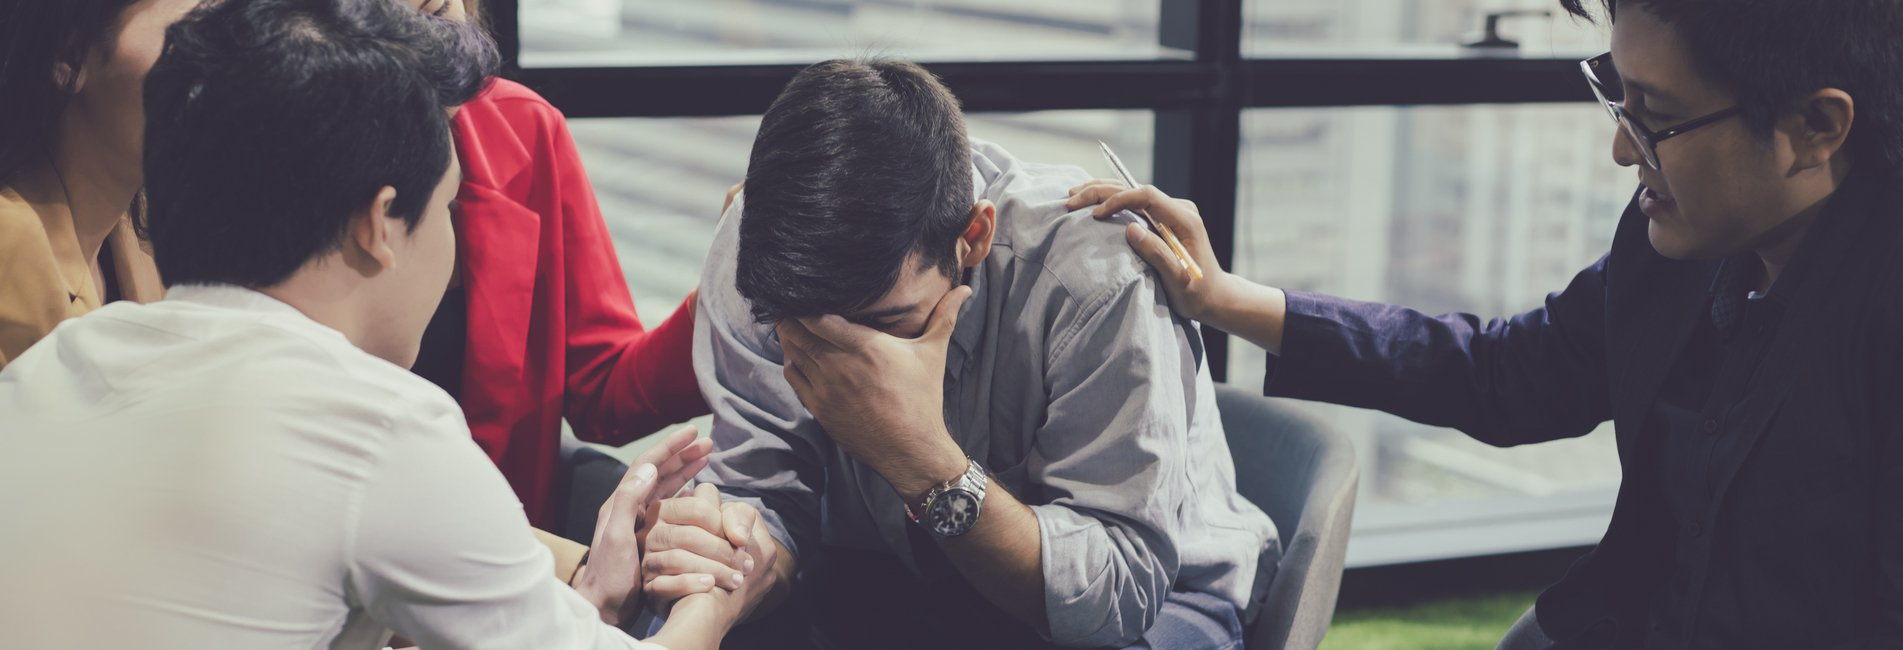 Aftercare Plan For Substance Abuse and Addiction - Resurgence - Individuals attending an outpatient group therapy session are comforting another attendee in recovery as he puts his head in his hands and tears up trying to explain his frustrations with remaining sober.